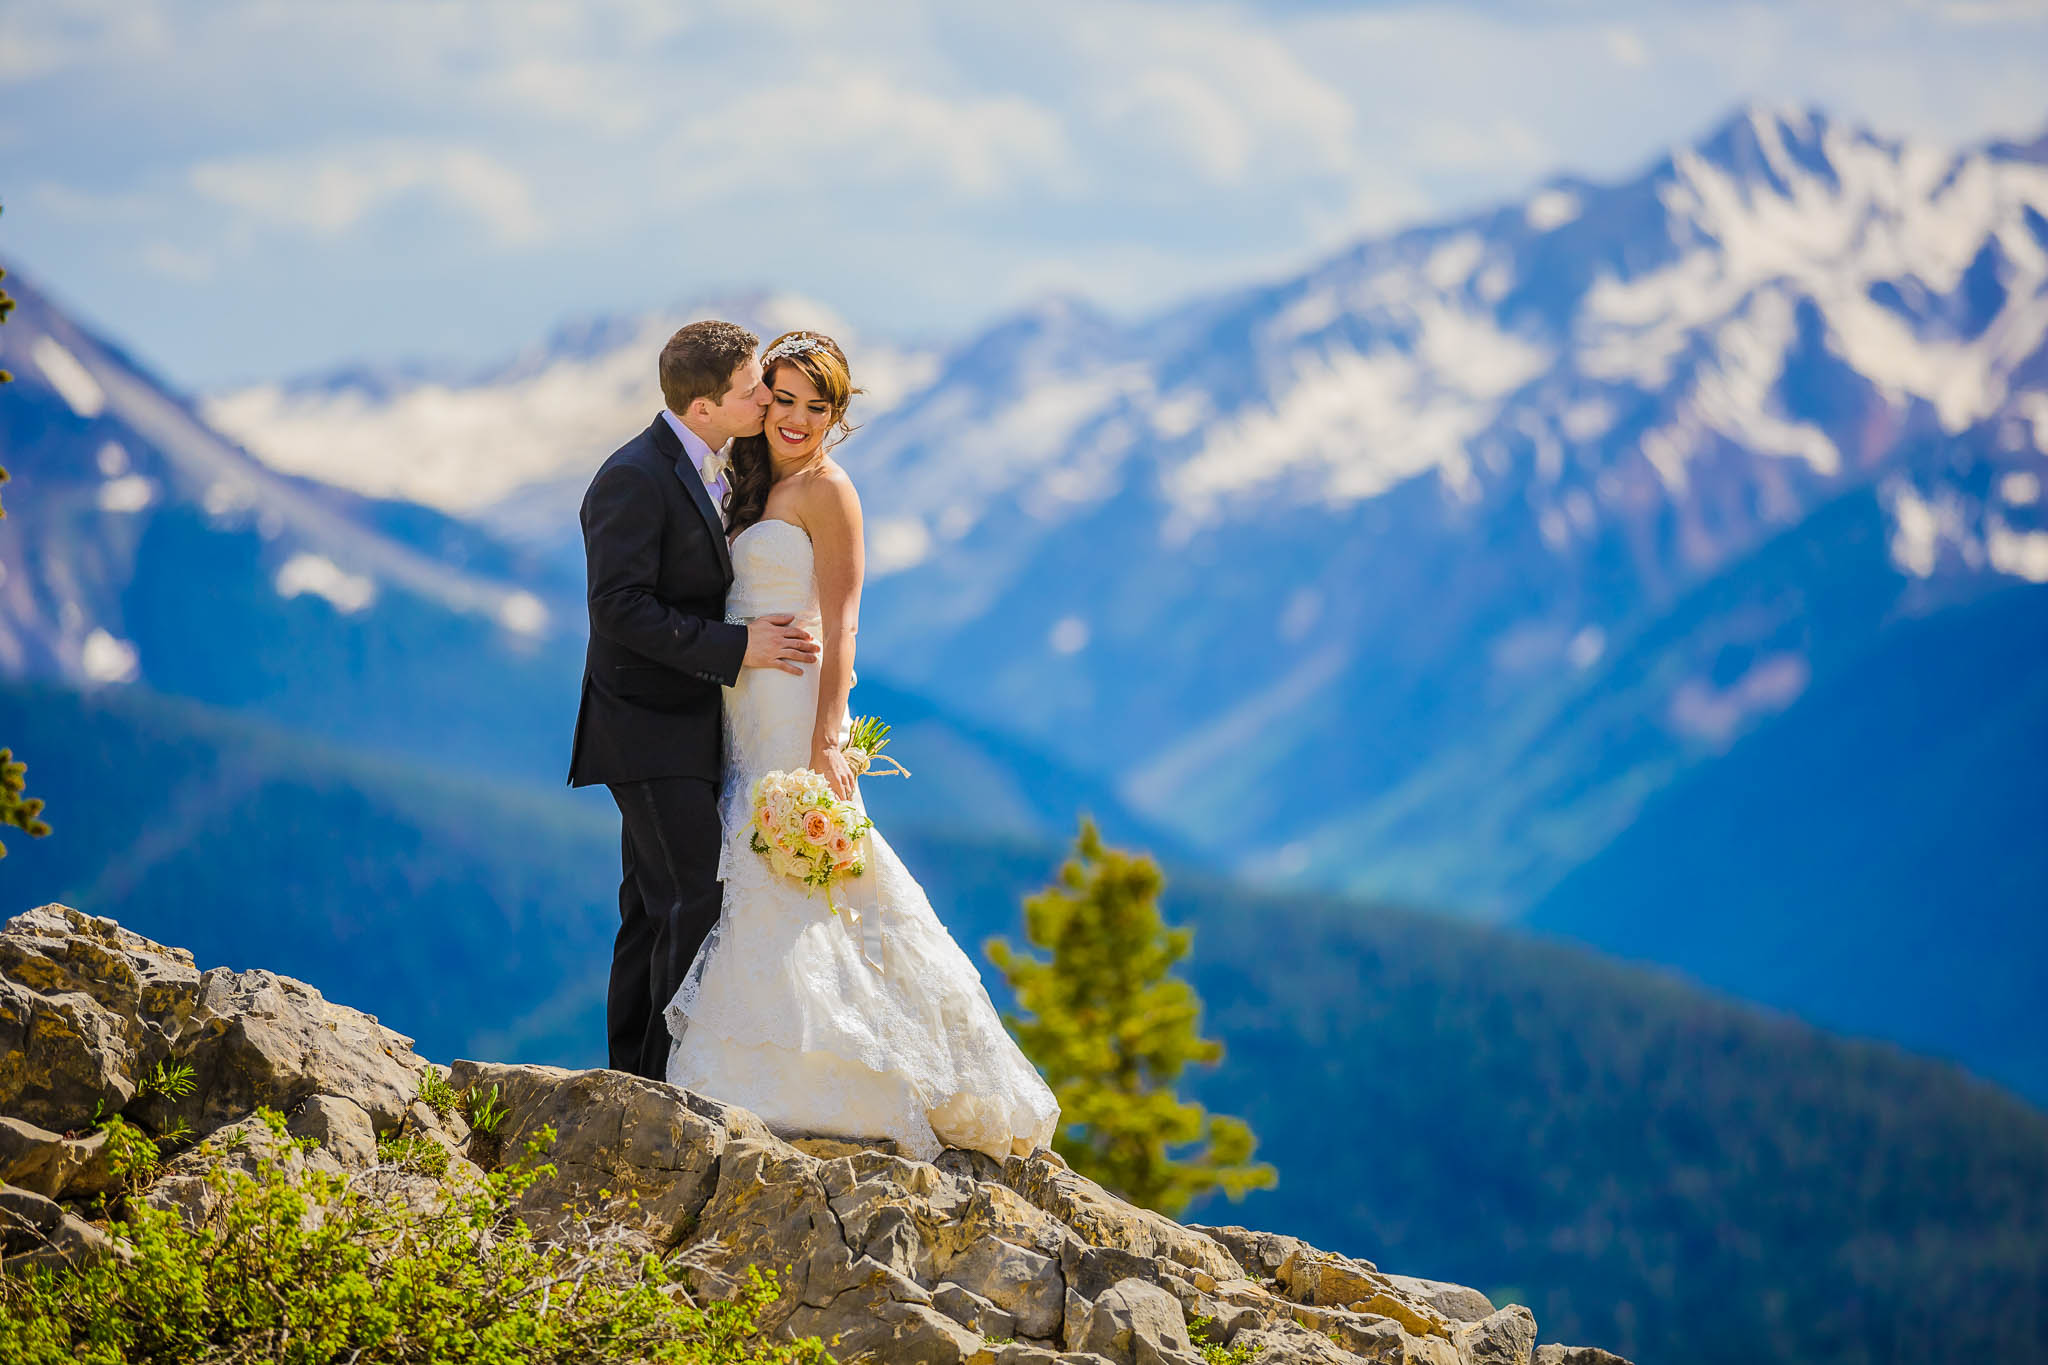 Photo Of A Wedding On Aspen Mountain Next To The Club And